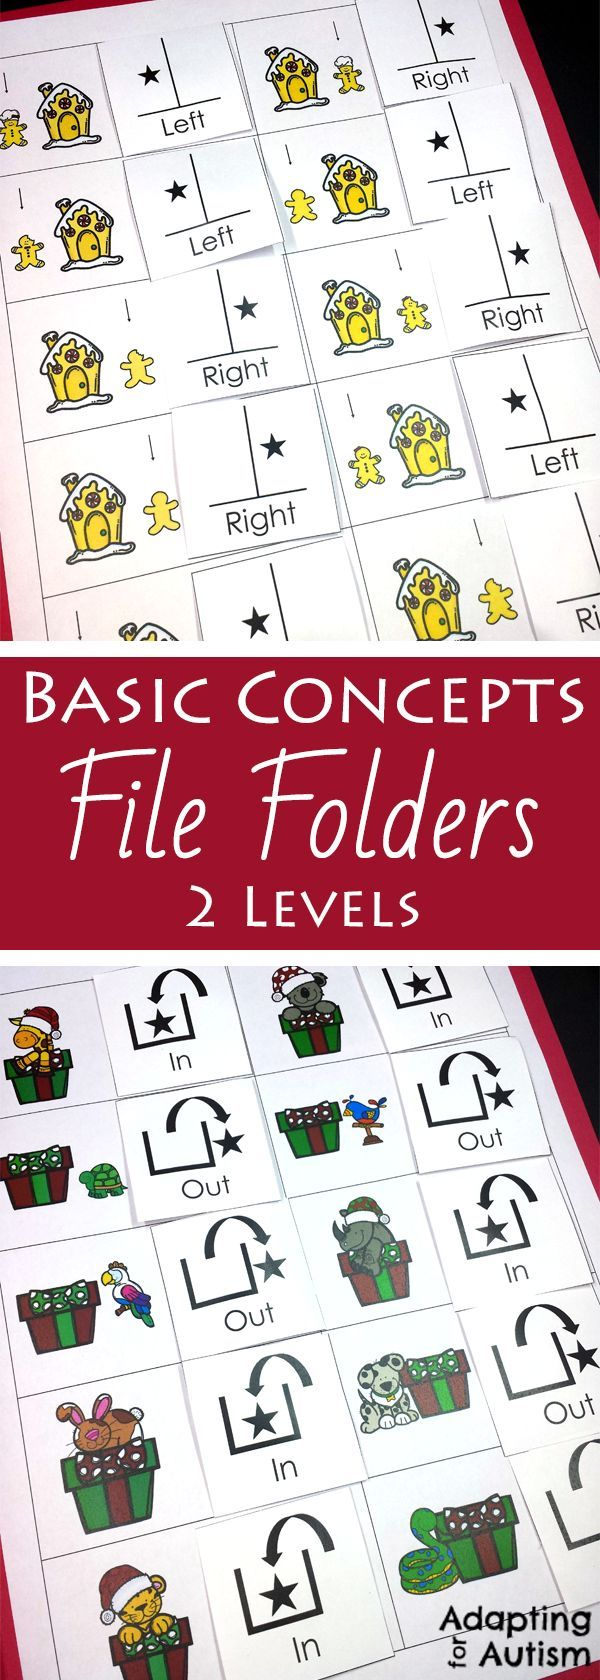 This Christmas file folder activity pack is full of basic concepts practice  for your special education or speech therapy students.  Includes 10  concepts and 2 levels each including many visual supports for your  students with autism.